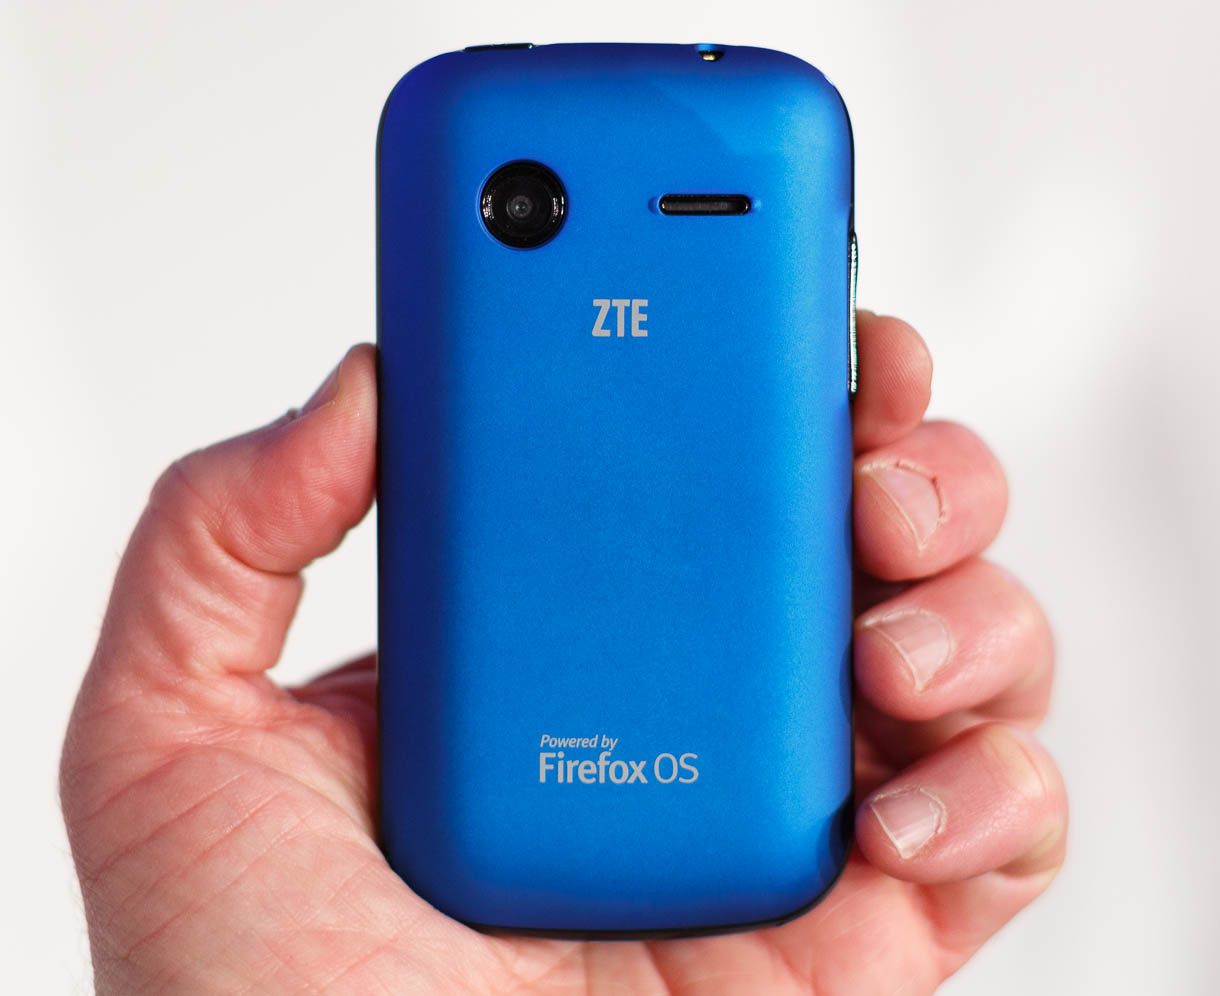 The back of the ZTE Open clearly shows the Firefox OS branding.